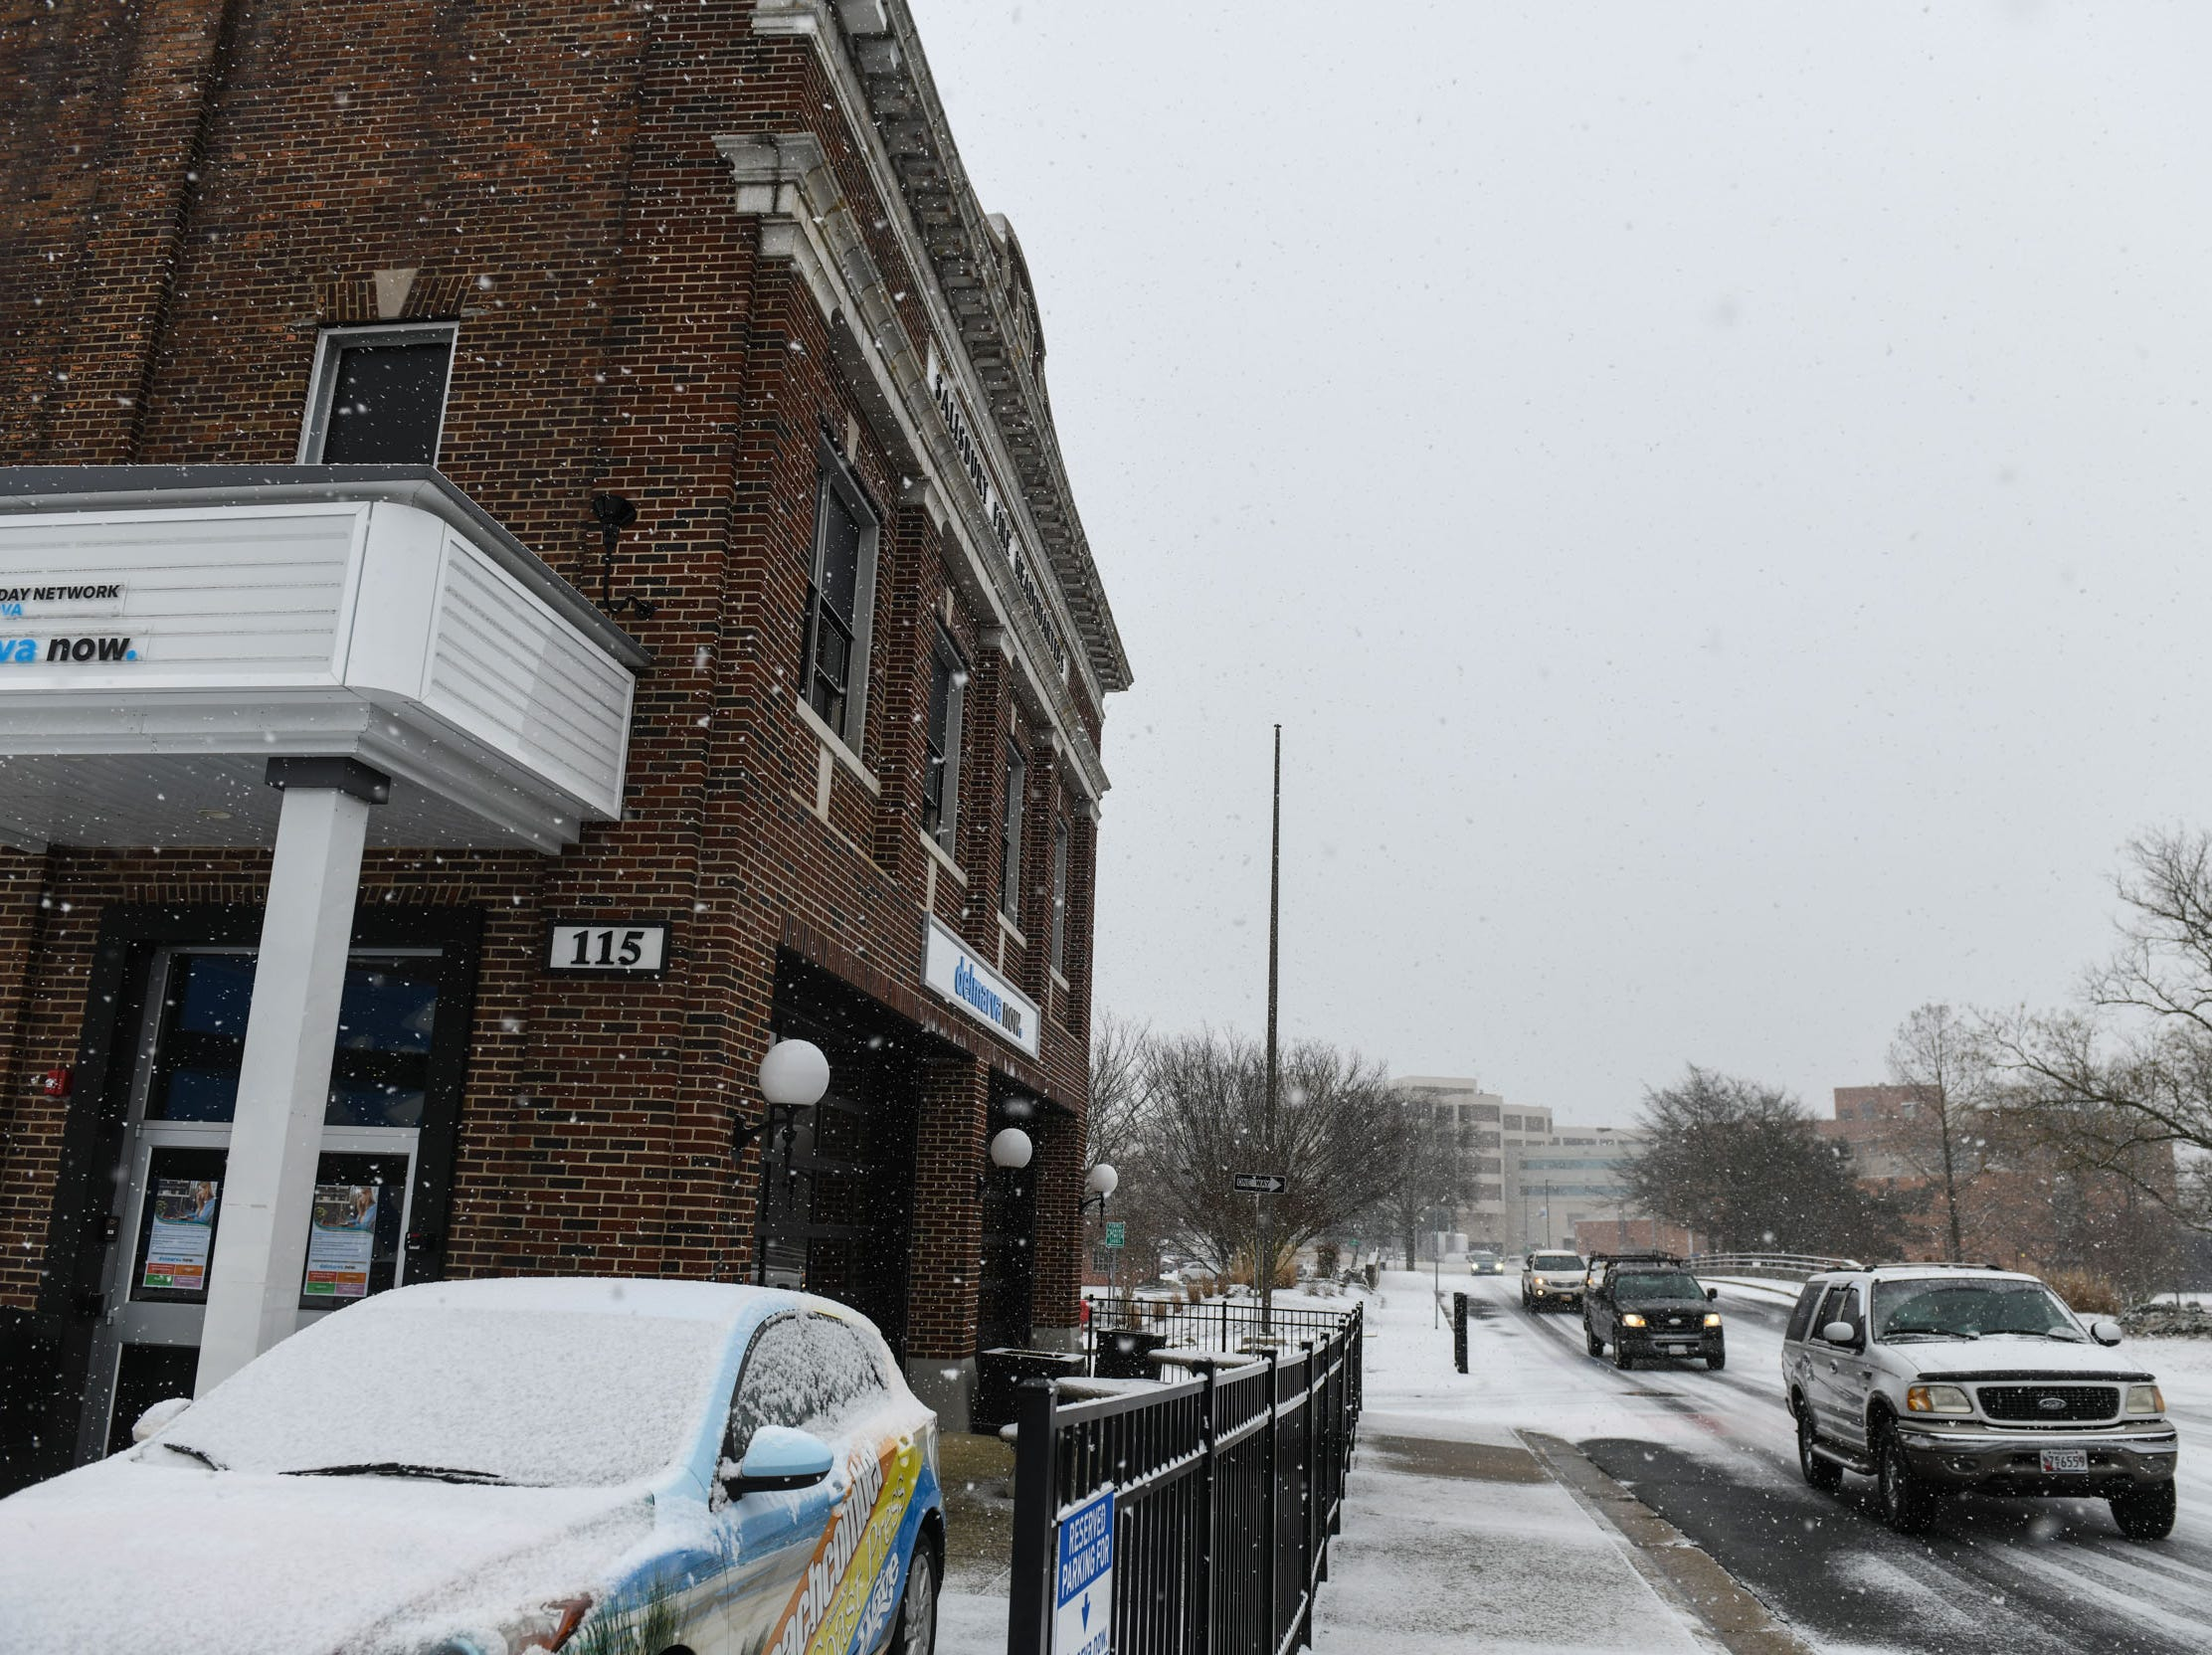 Downtown Salisbury gets a coating of snow on Friday, Feb. 1, 2019.